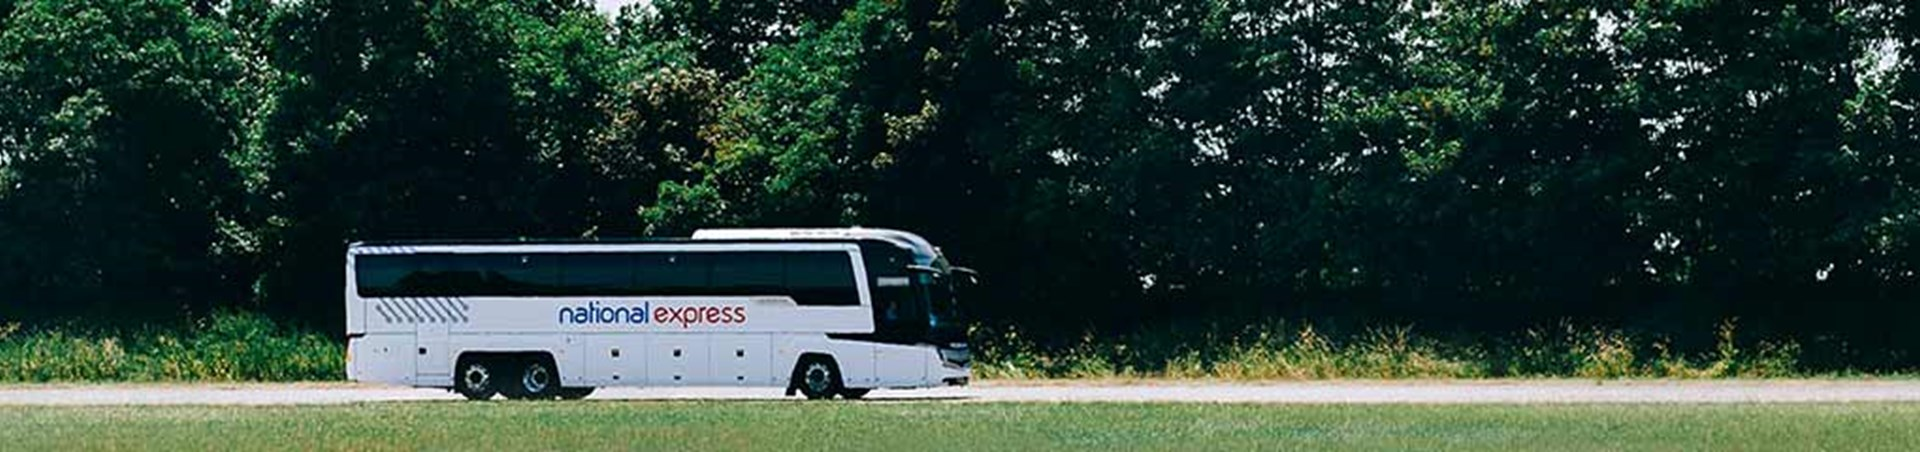 Travel across the UK and Europe by coach with National Express